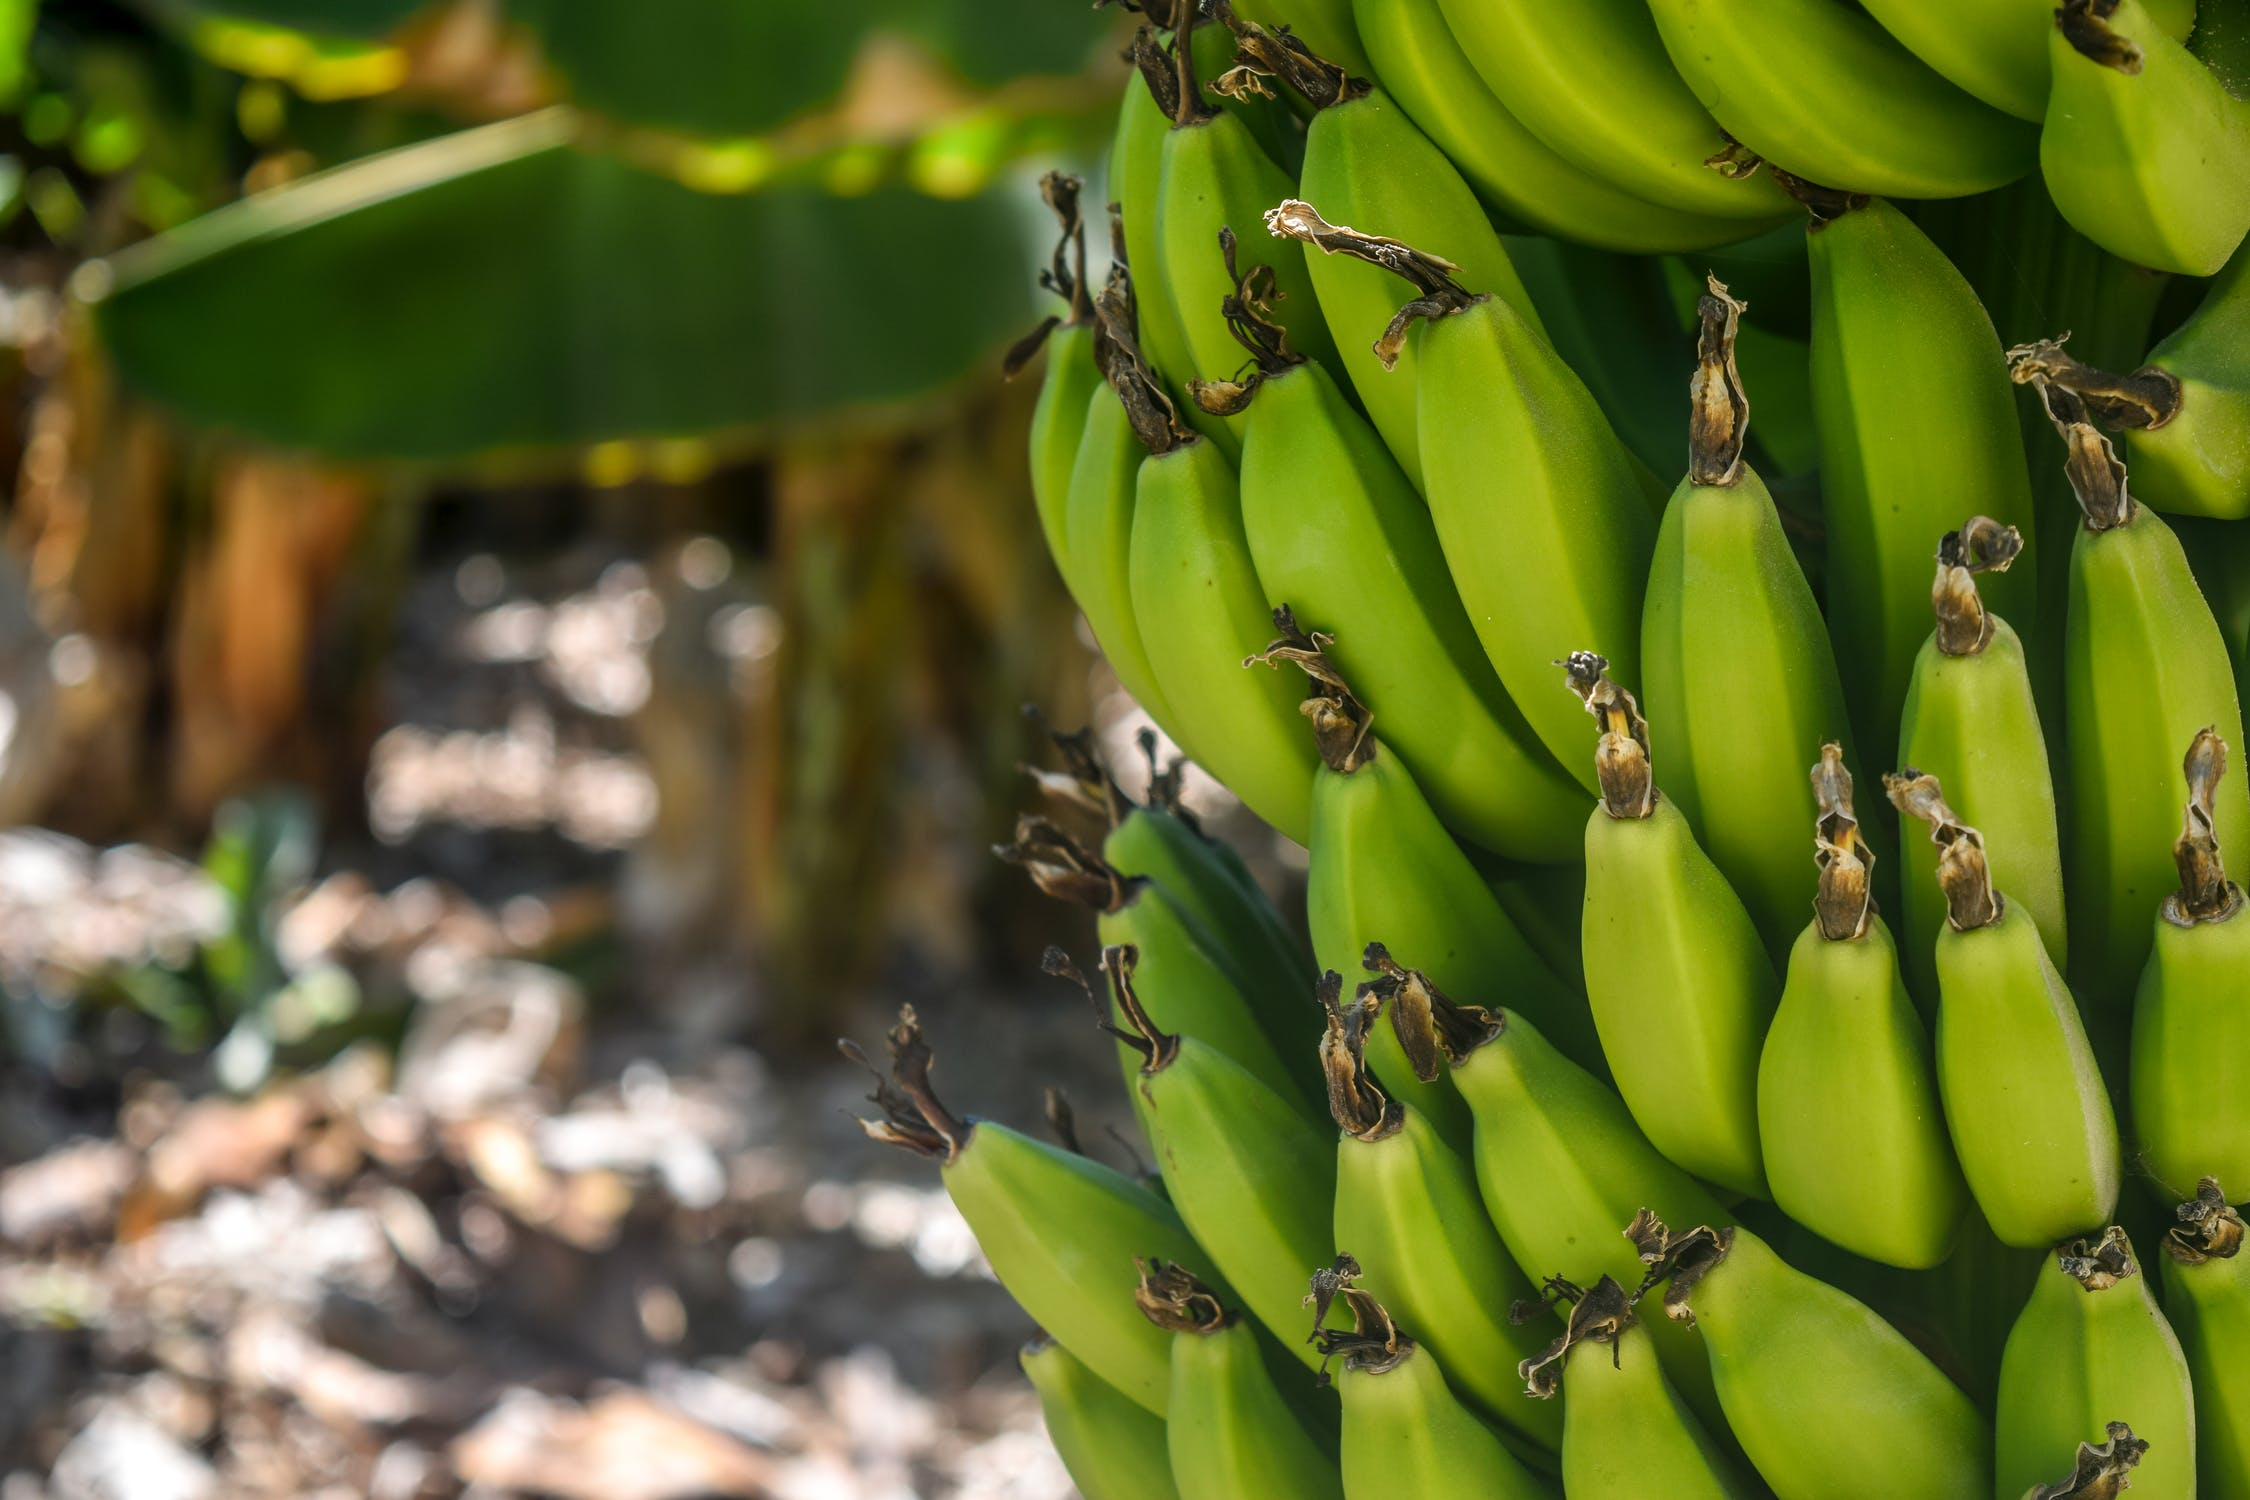 Climate change coming for our bananas